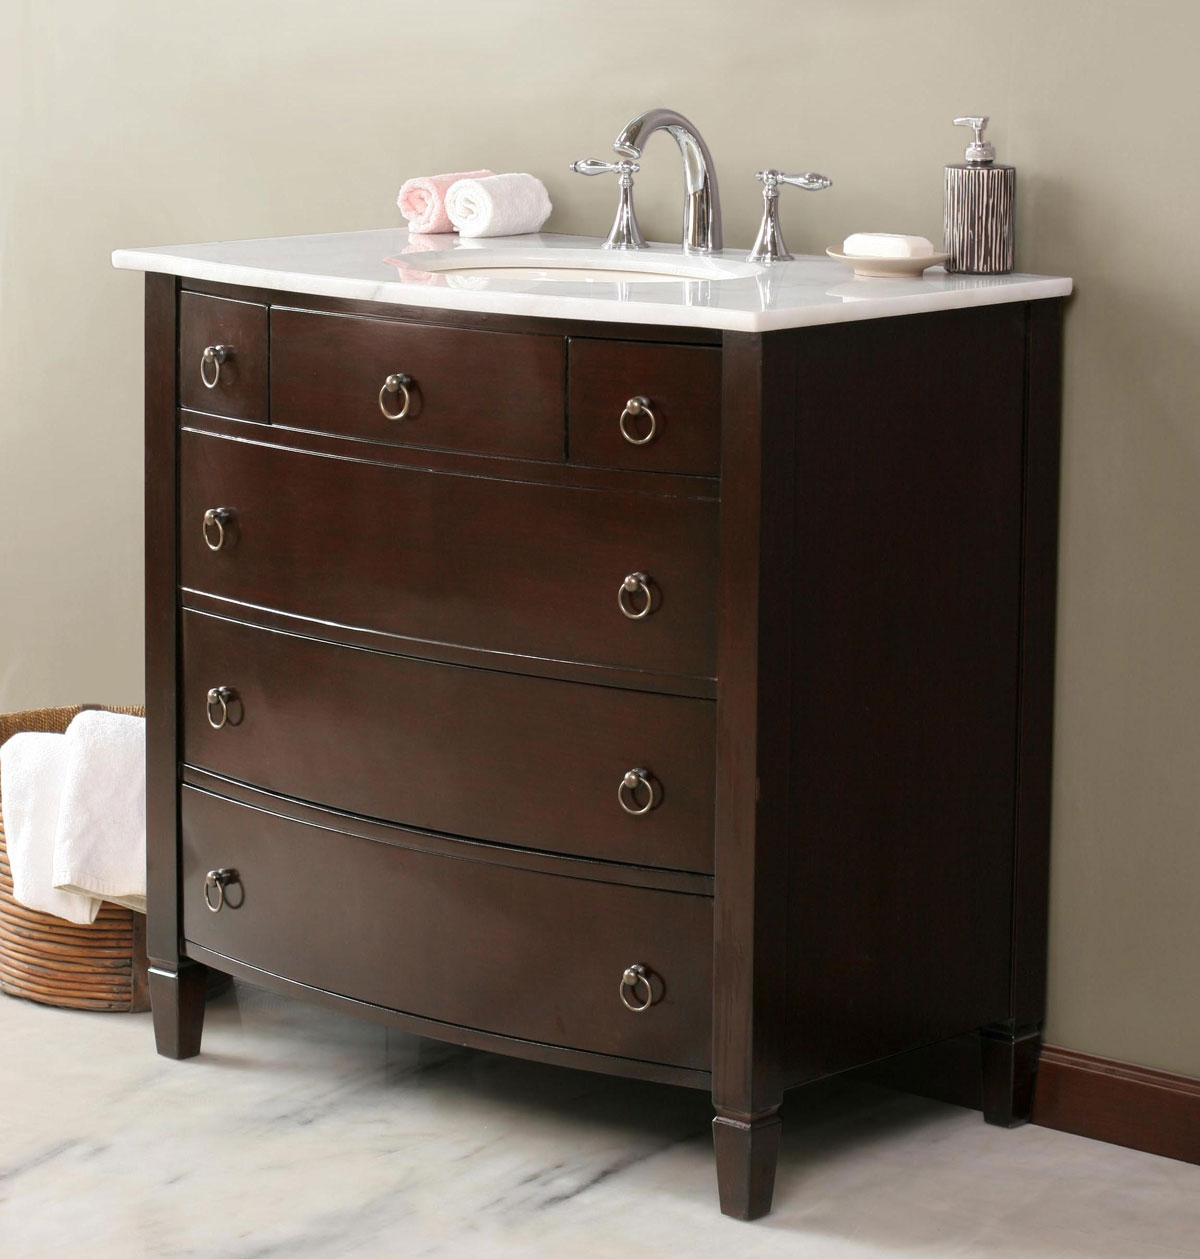 Bathroom Vanities With Drawers On Both Sides